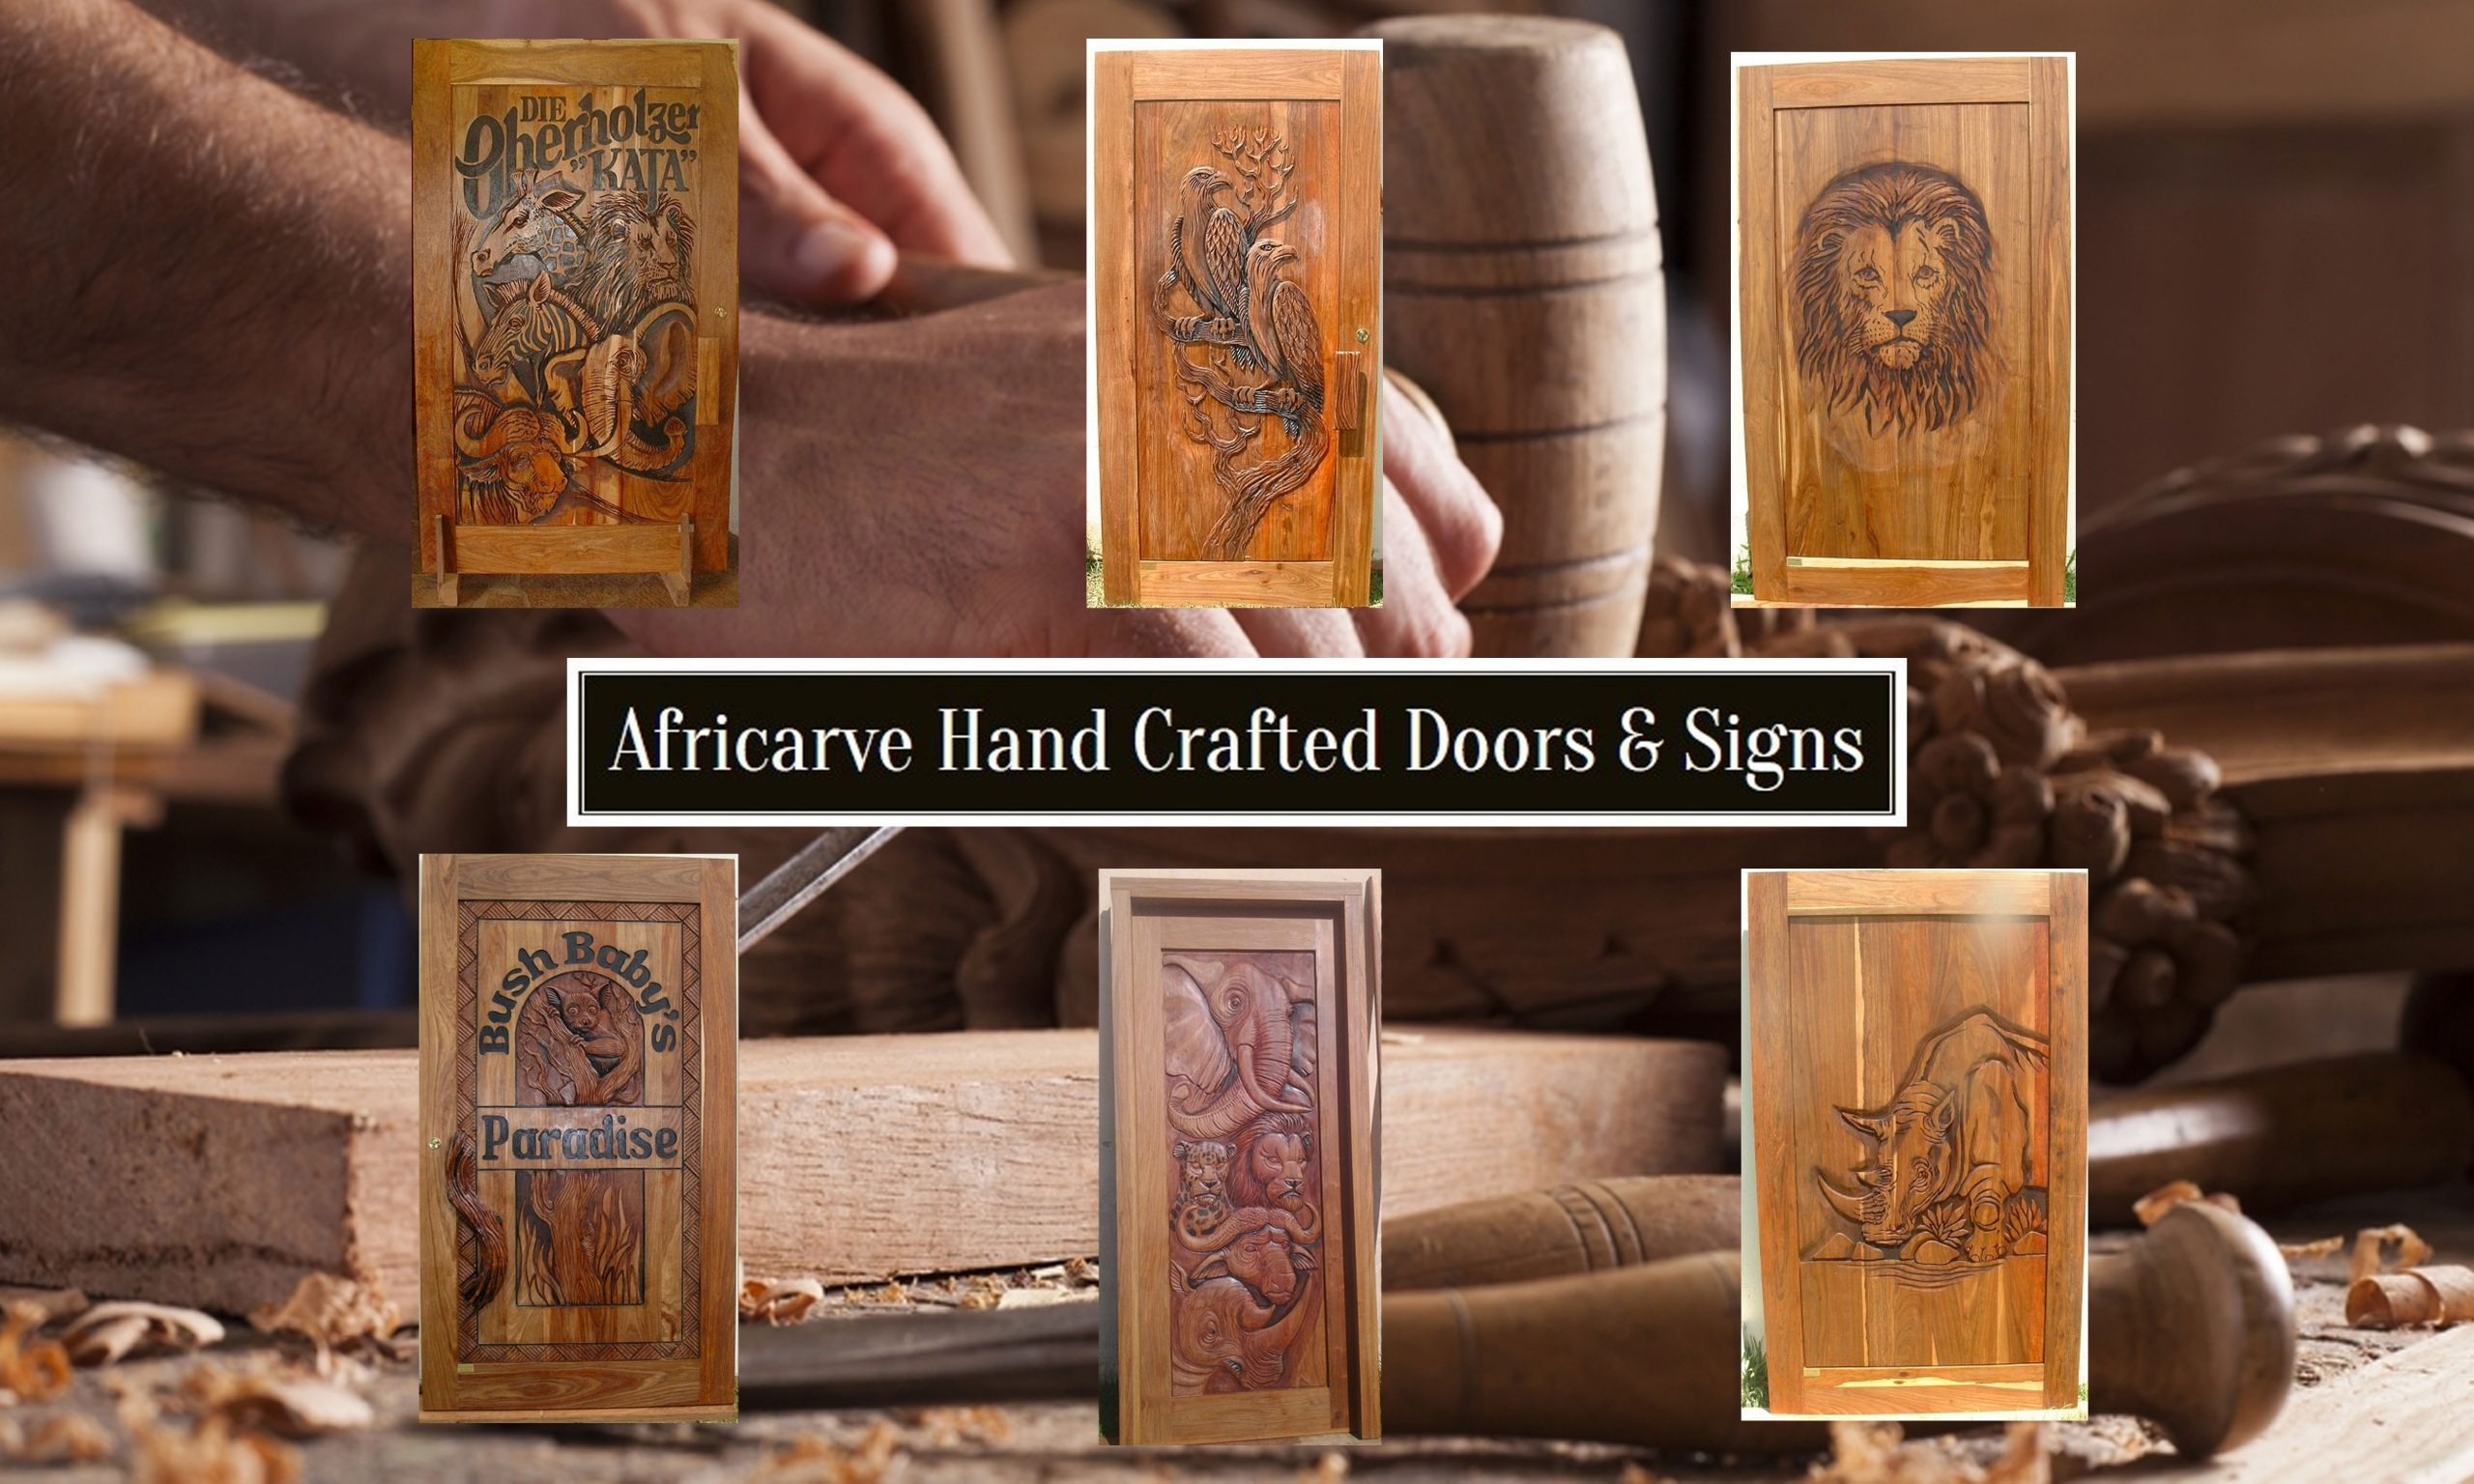 Africarve Adver December 2nd 2019 scaled - Africarve Hand Crafted Doors and Church Furnishings